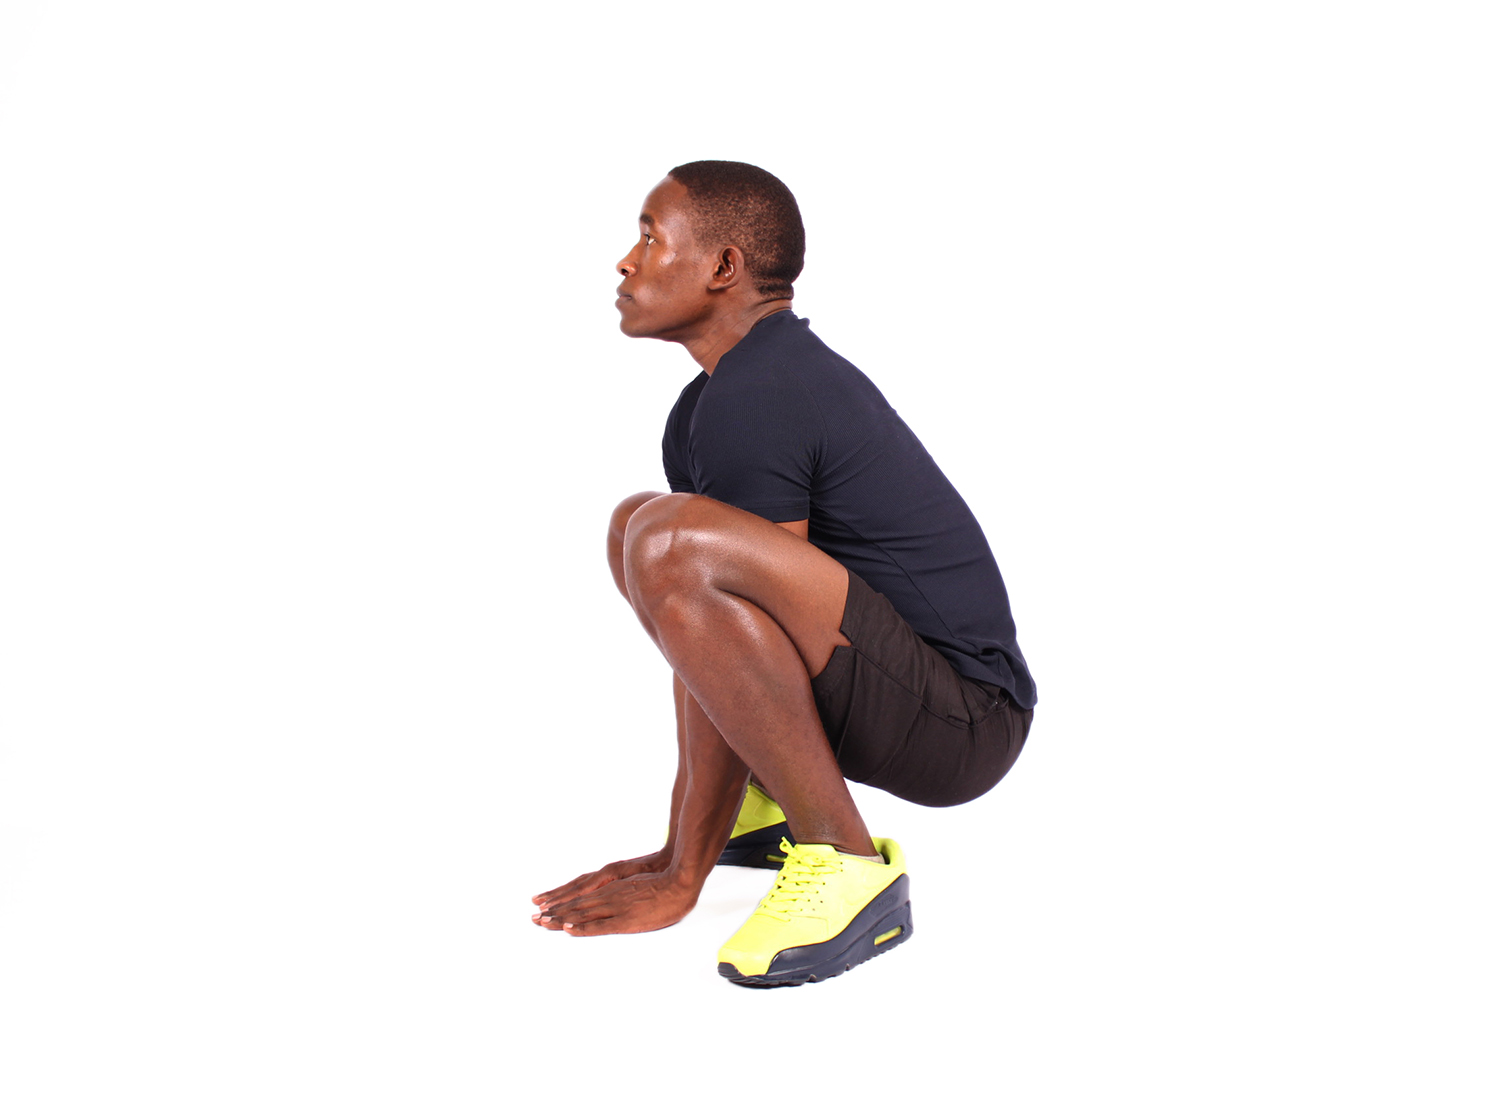 Fitness man doing deep squat exercise